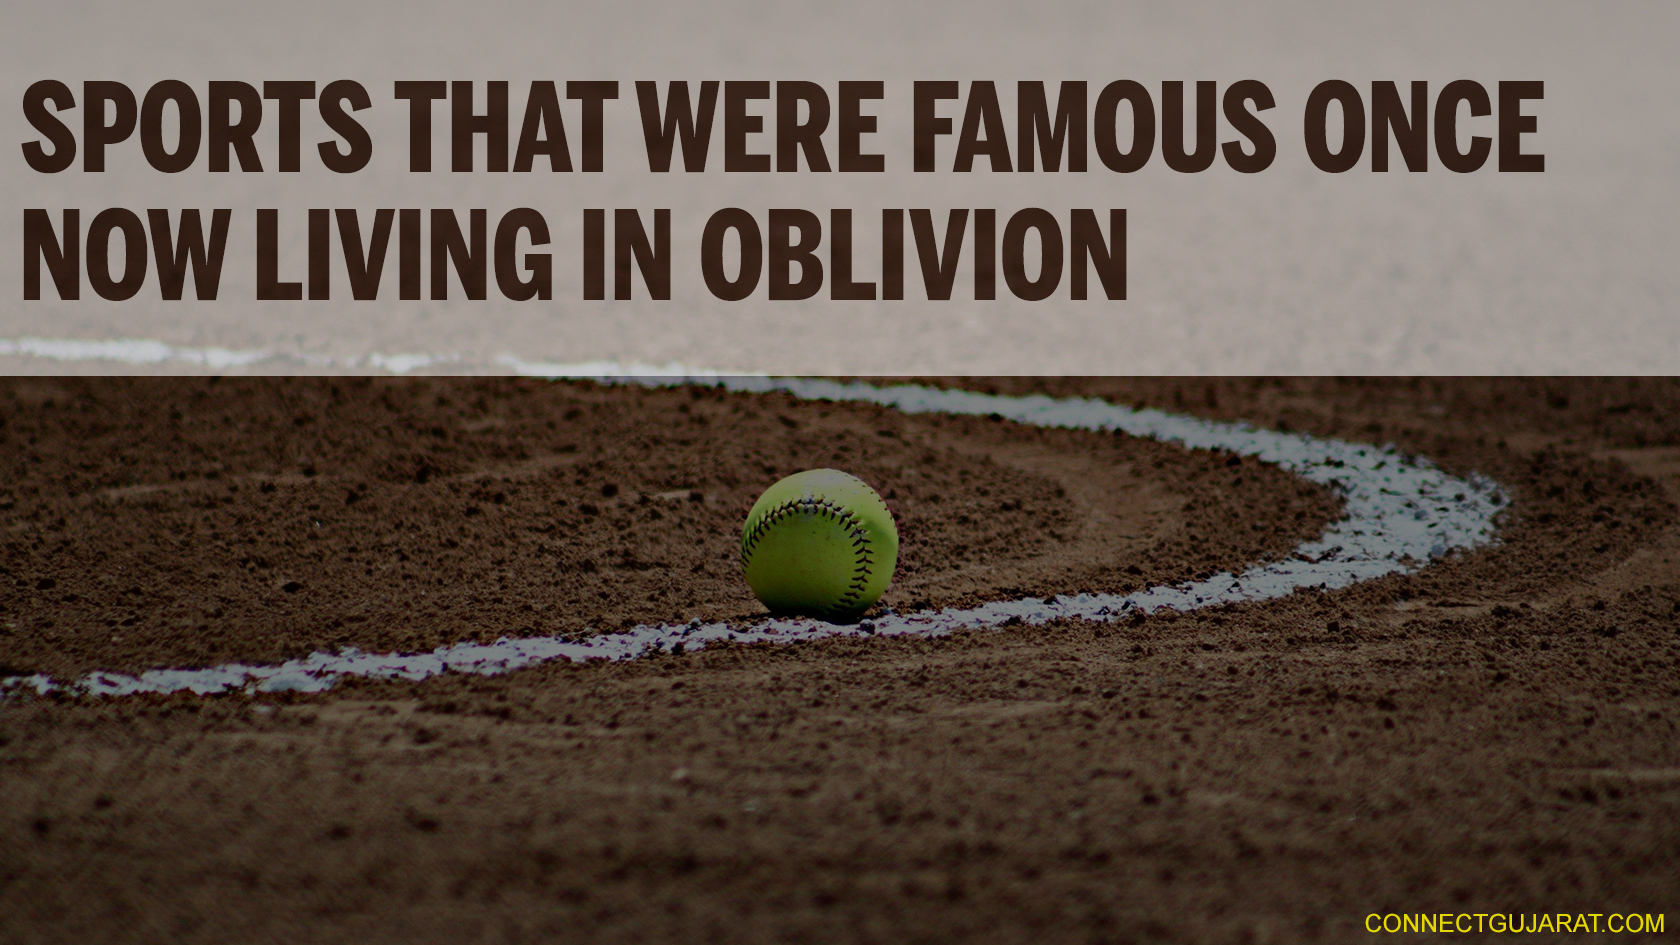 Sports That Were Famous Once Now Living in Oblivion